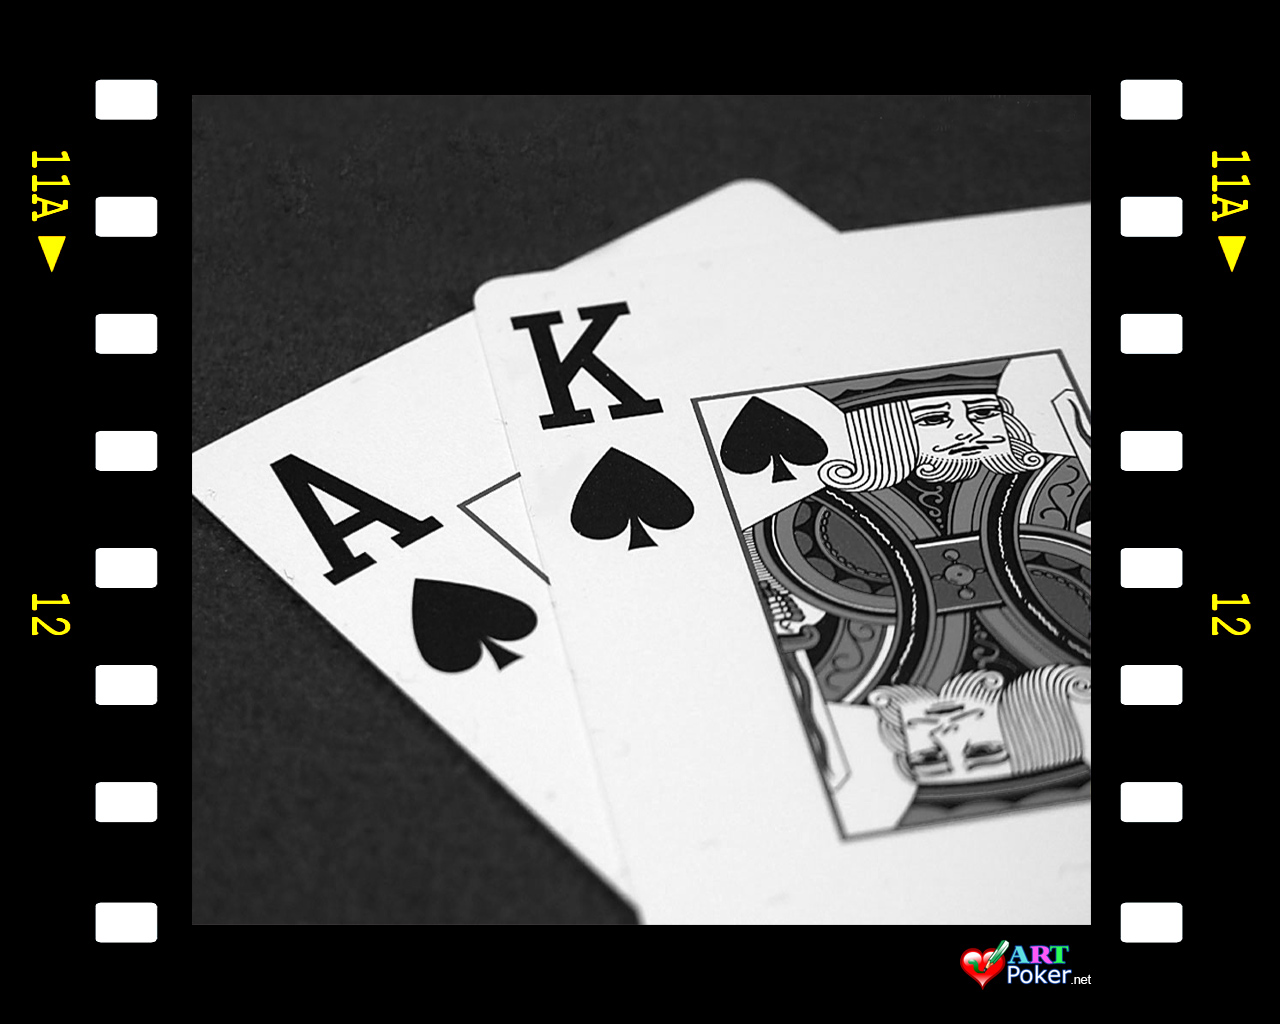 1280x1024 poker wallpaper